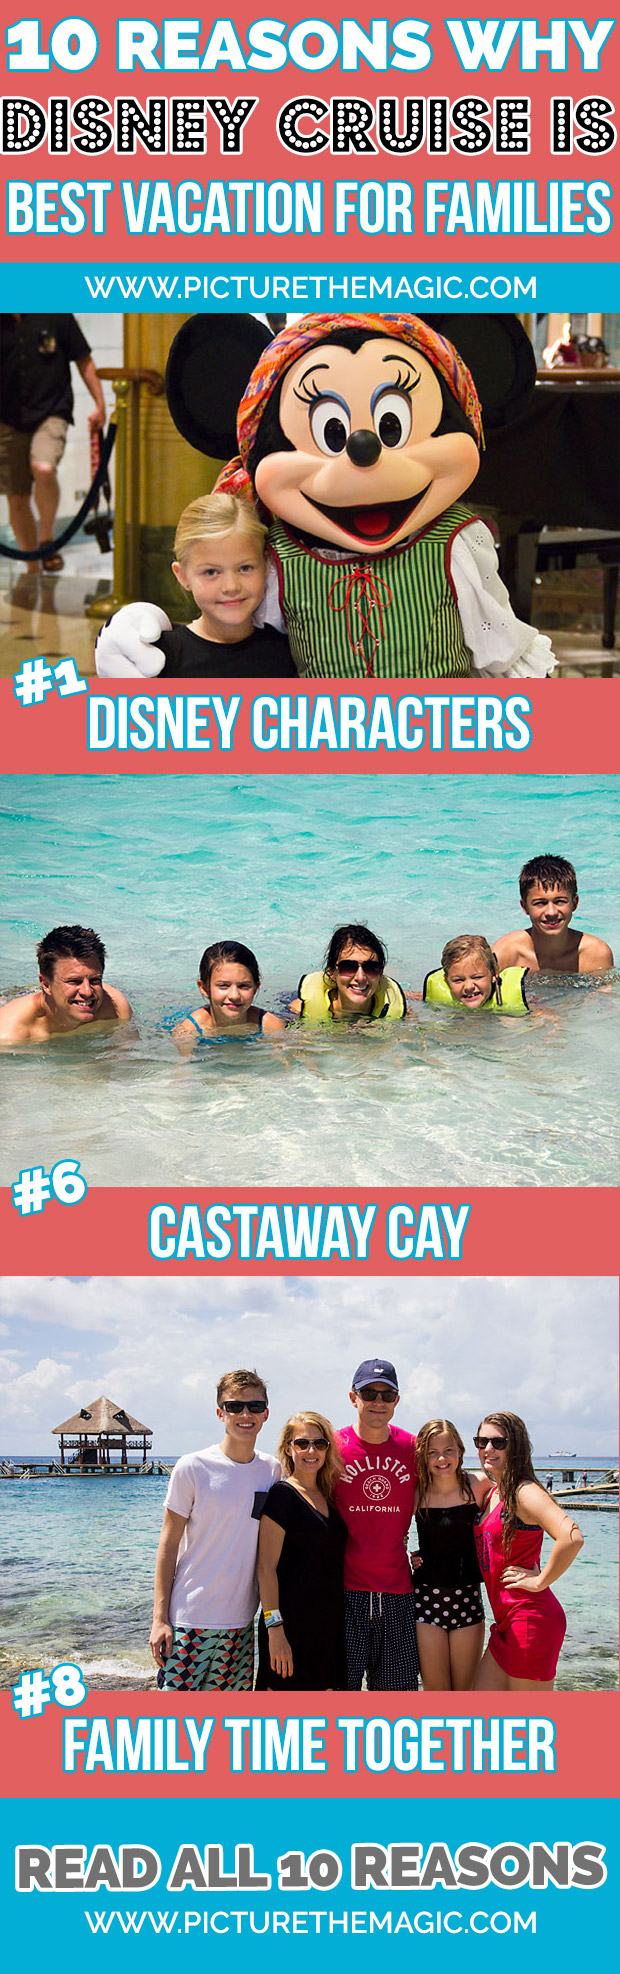 10 Reasons Why Disney Cruise is Best Vacation for Families. Ever.